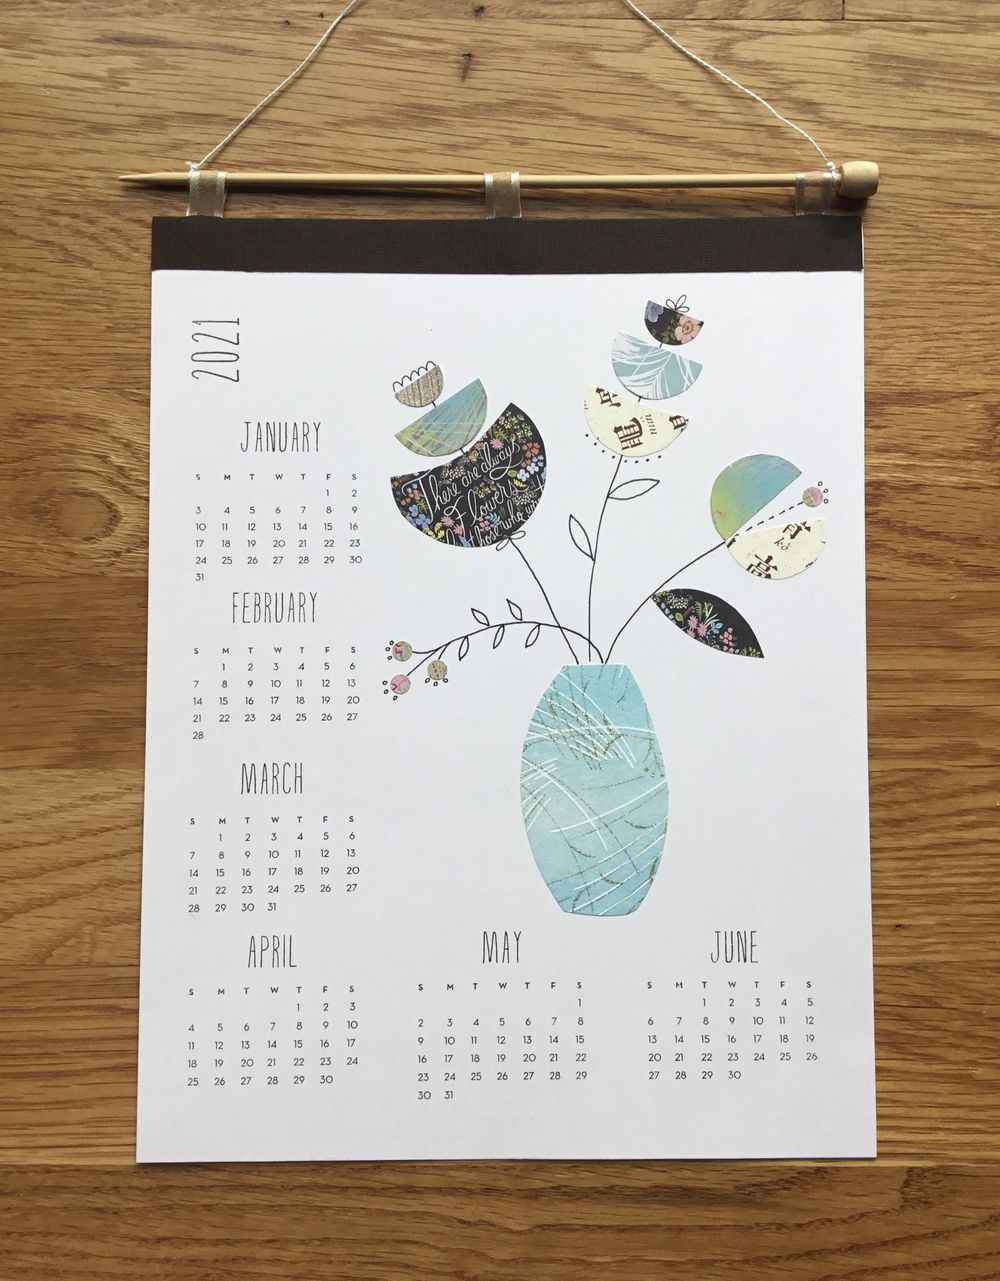 Collage calendar - image 1 - student project